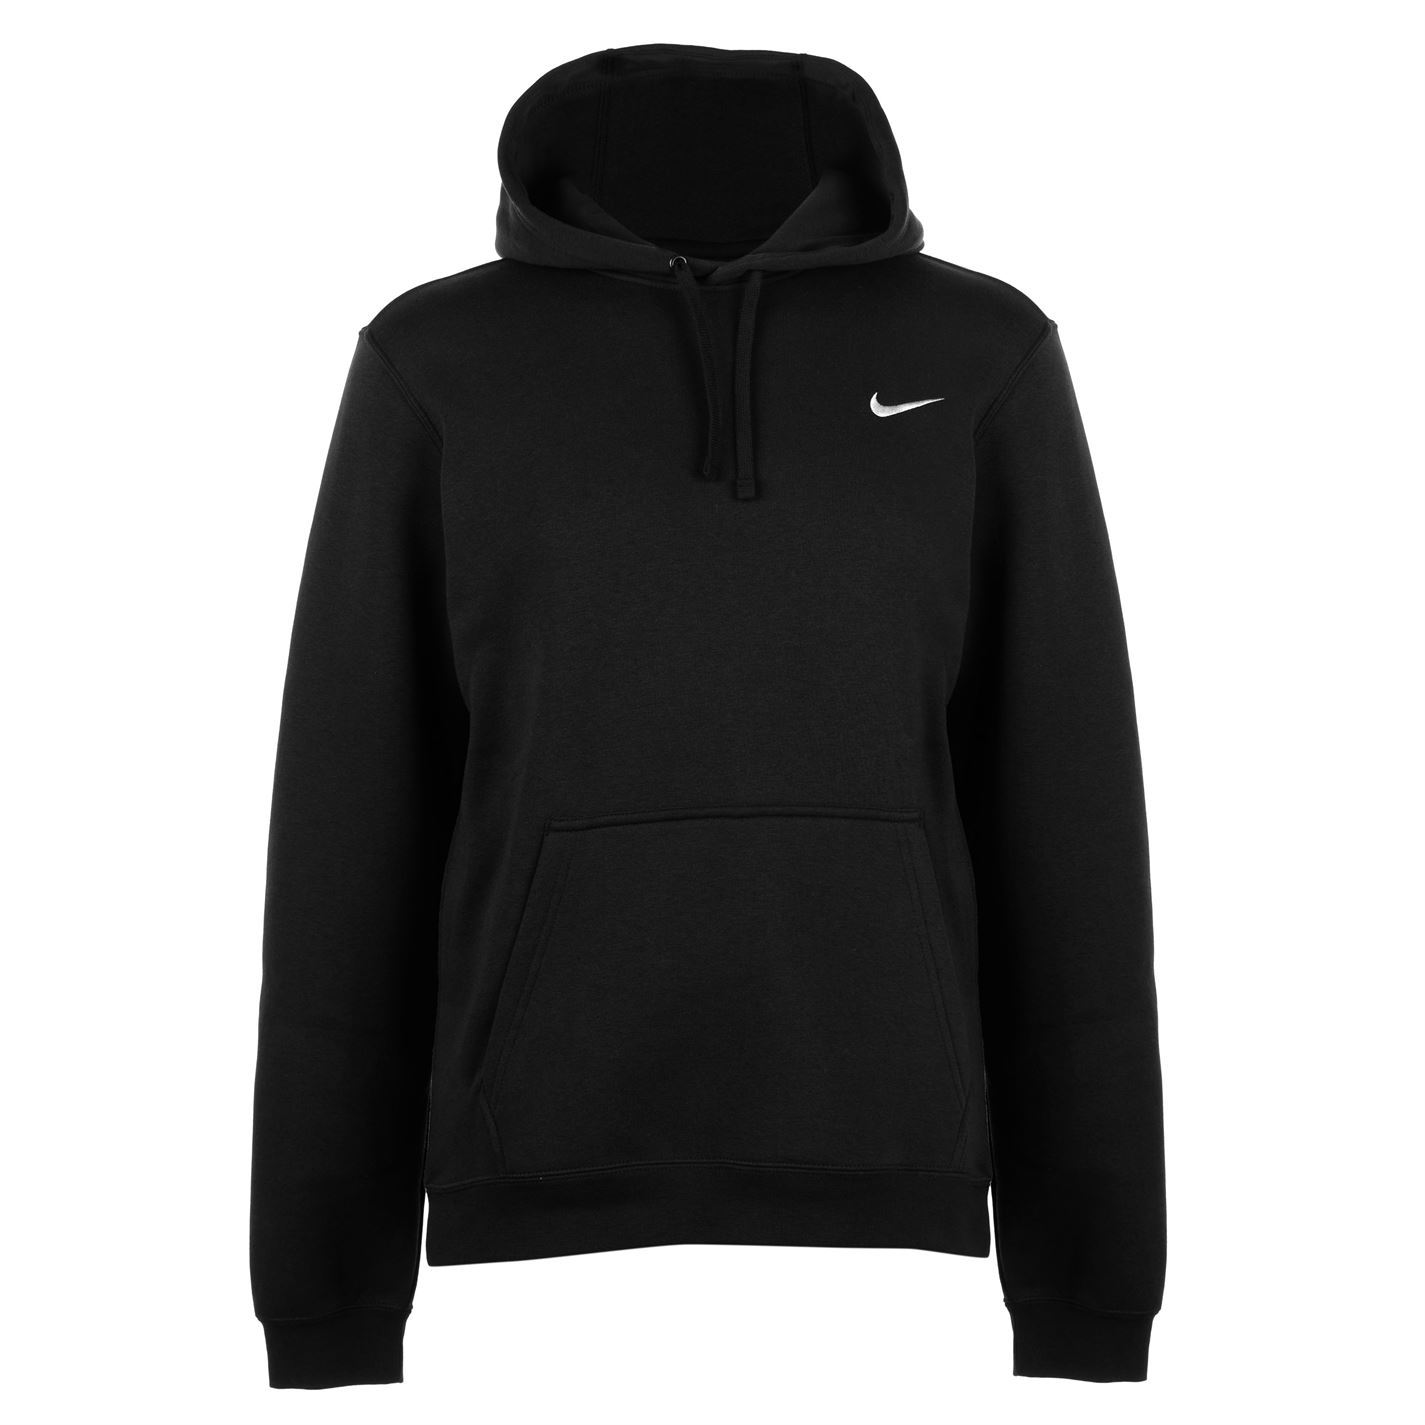 Nike-Fundamentals-Fleece-Lined-Pullover-Hoody-Mens-OTH-Hoodie-Sweatshirt-Sweater thumbnail 3